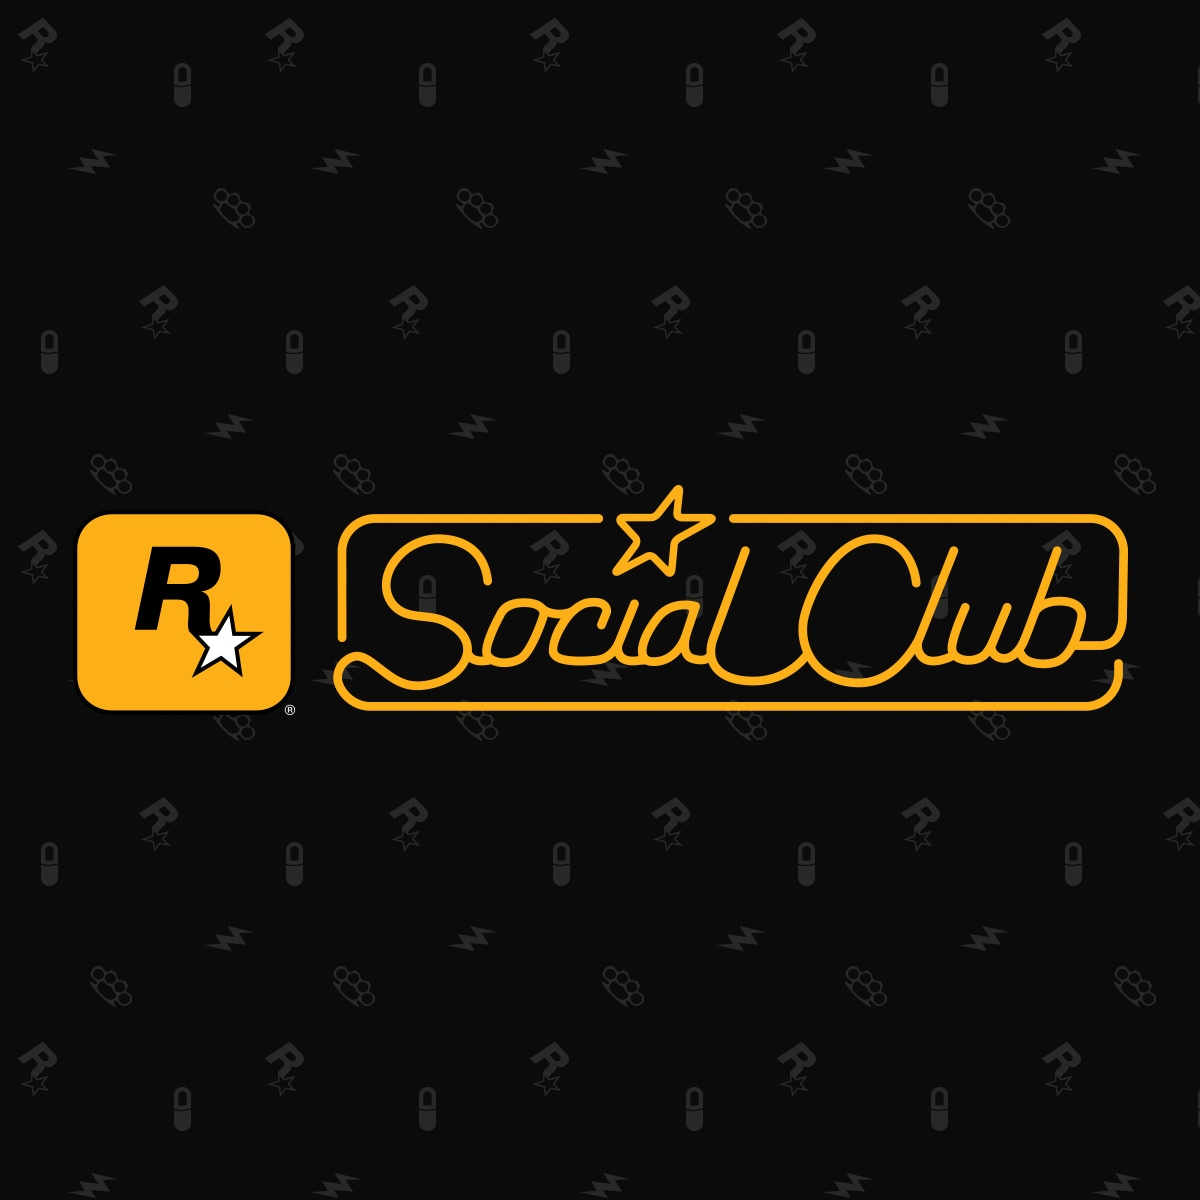 Online Events - Rockstar Games Social Club